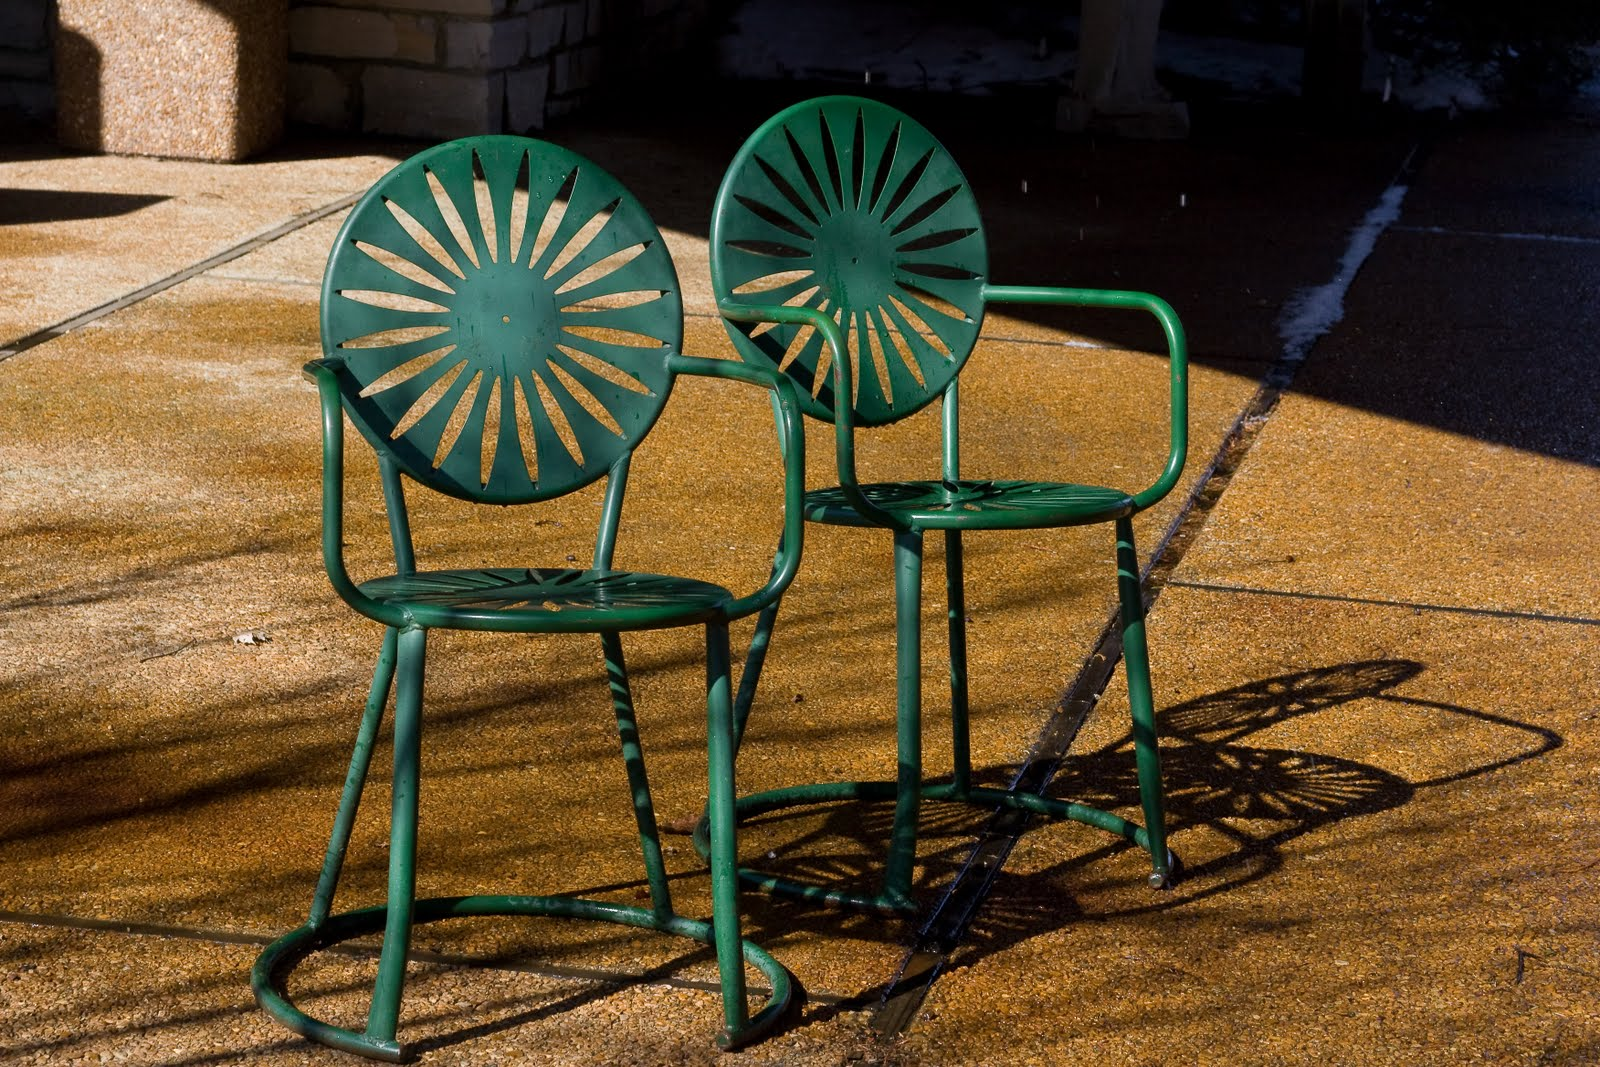 University of Wisconsin Union Terrace Sunburst Chair & Mad for Mid-Century: University of Wisconsin Union Terrace Sunburst ...